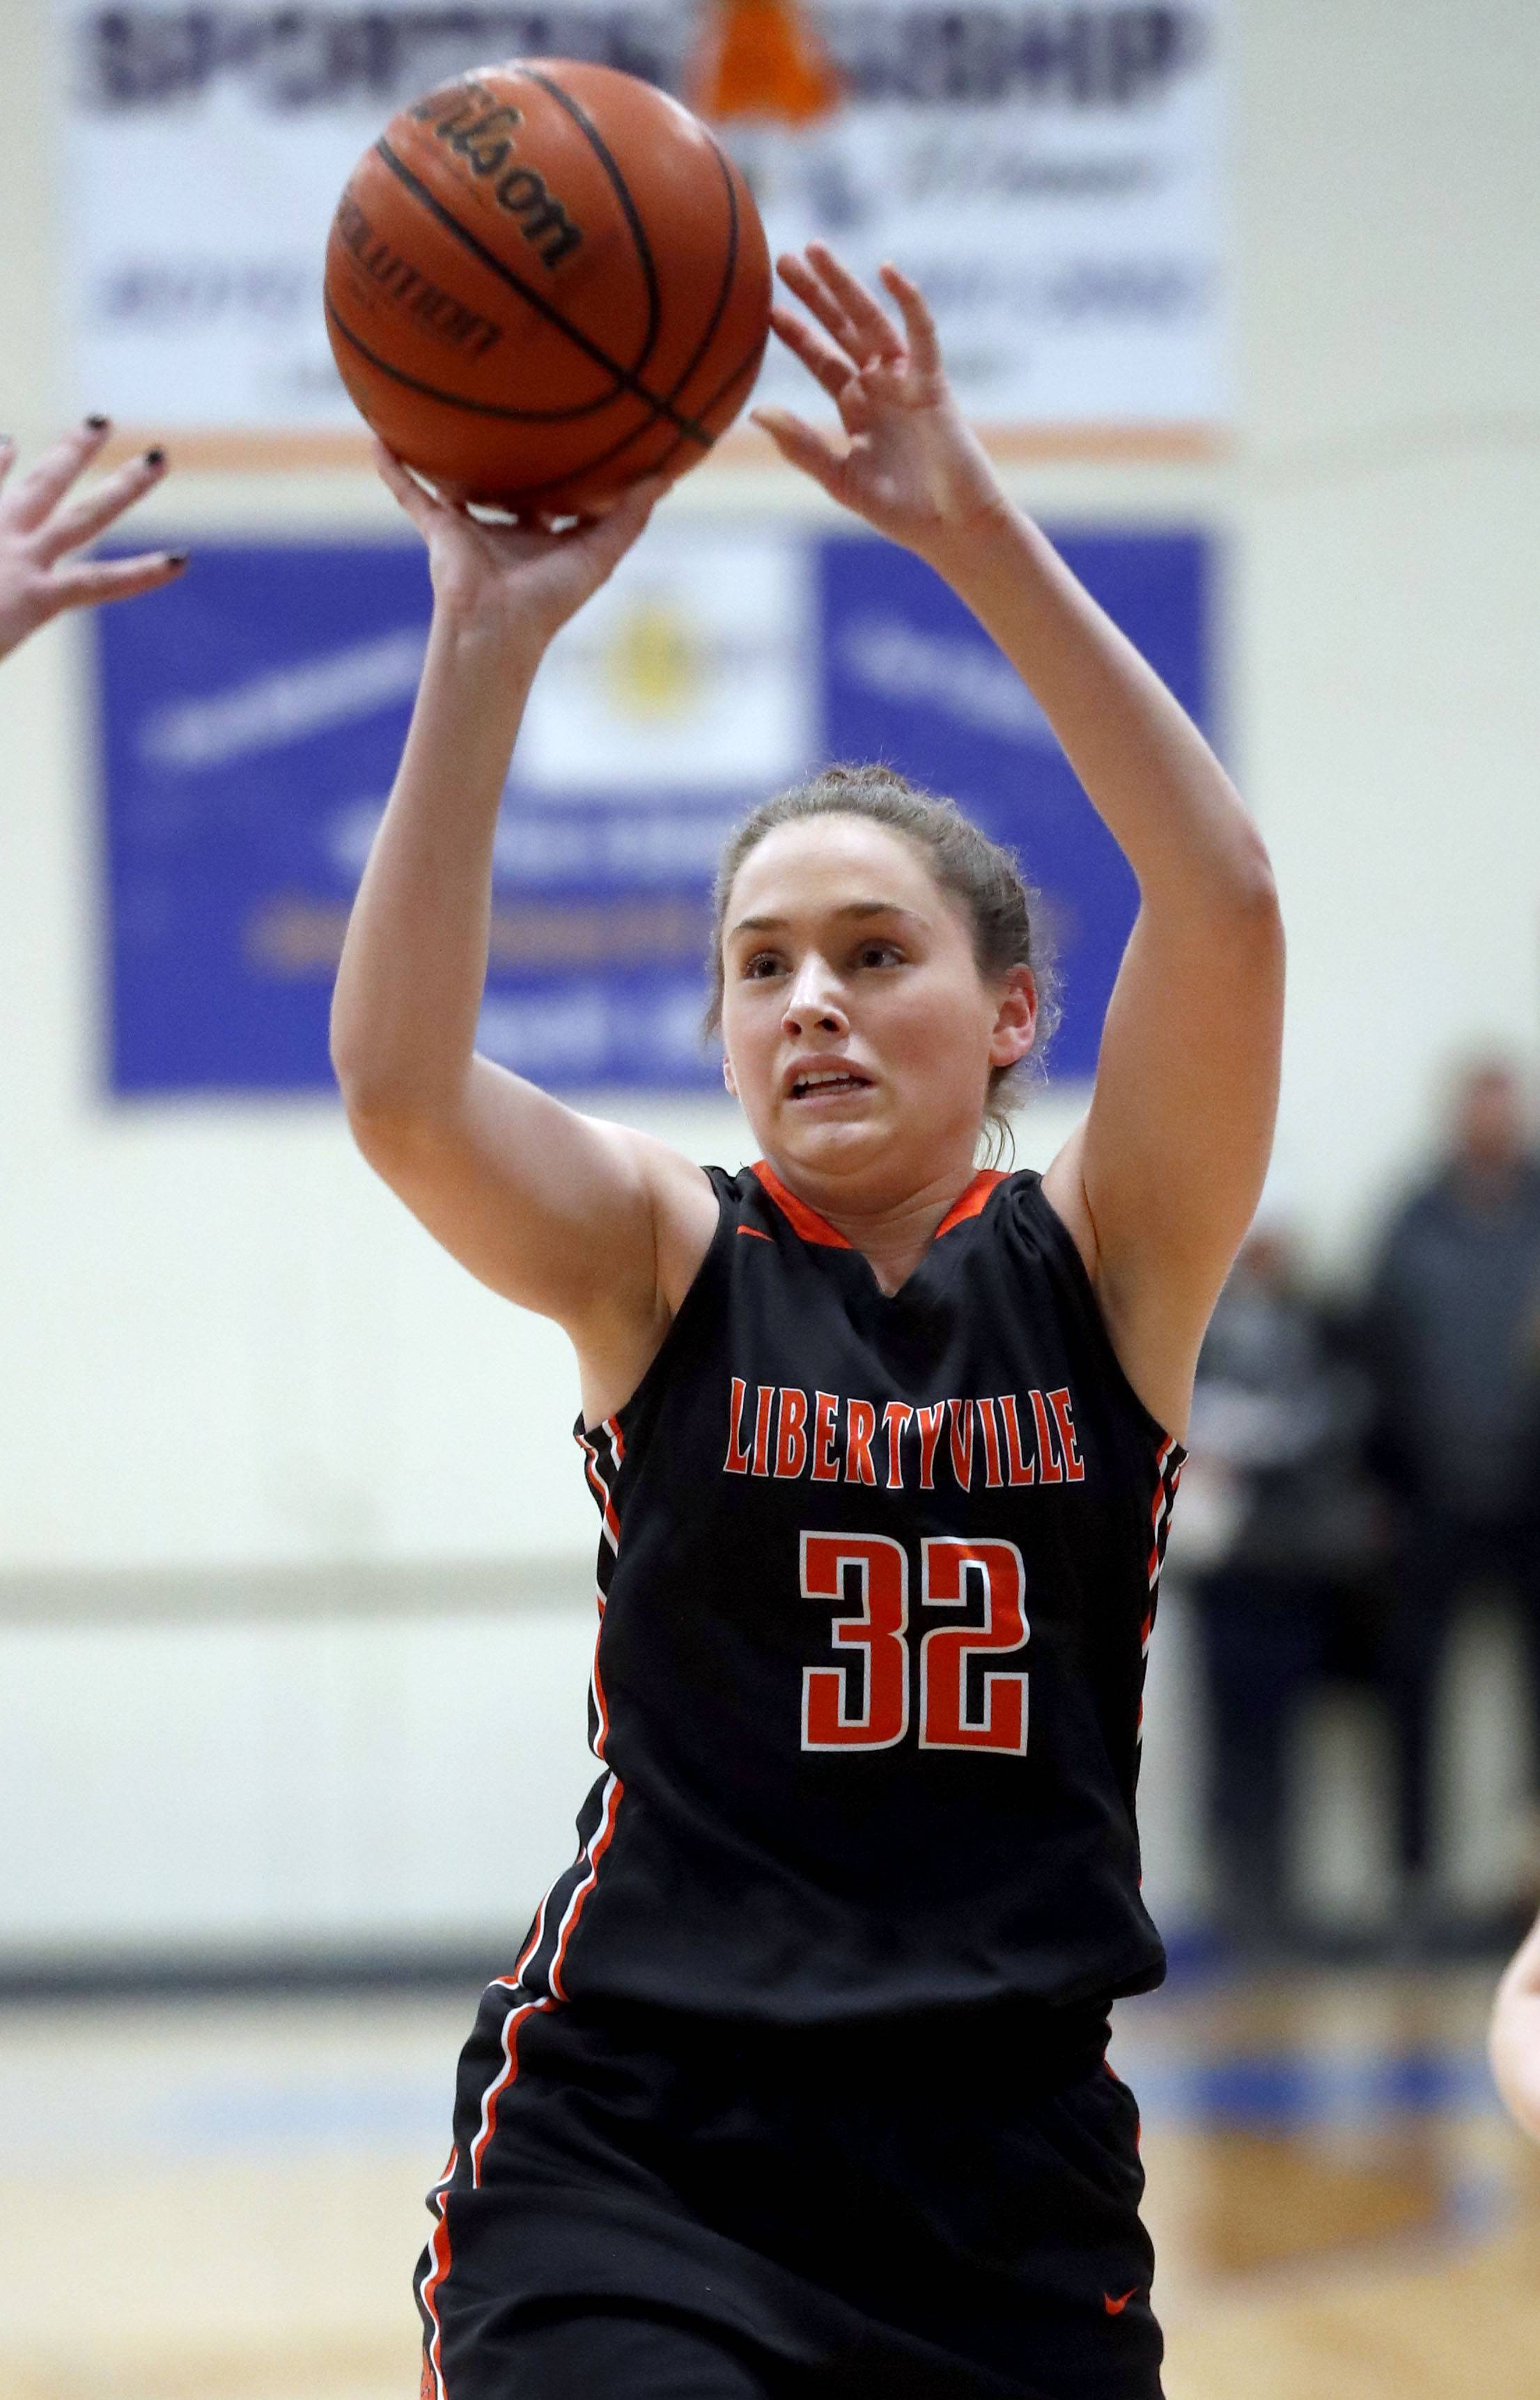 Libertyville's Margaret Buchert shoots a jumper during their game Wednesday night in Lake Forest.